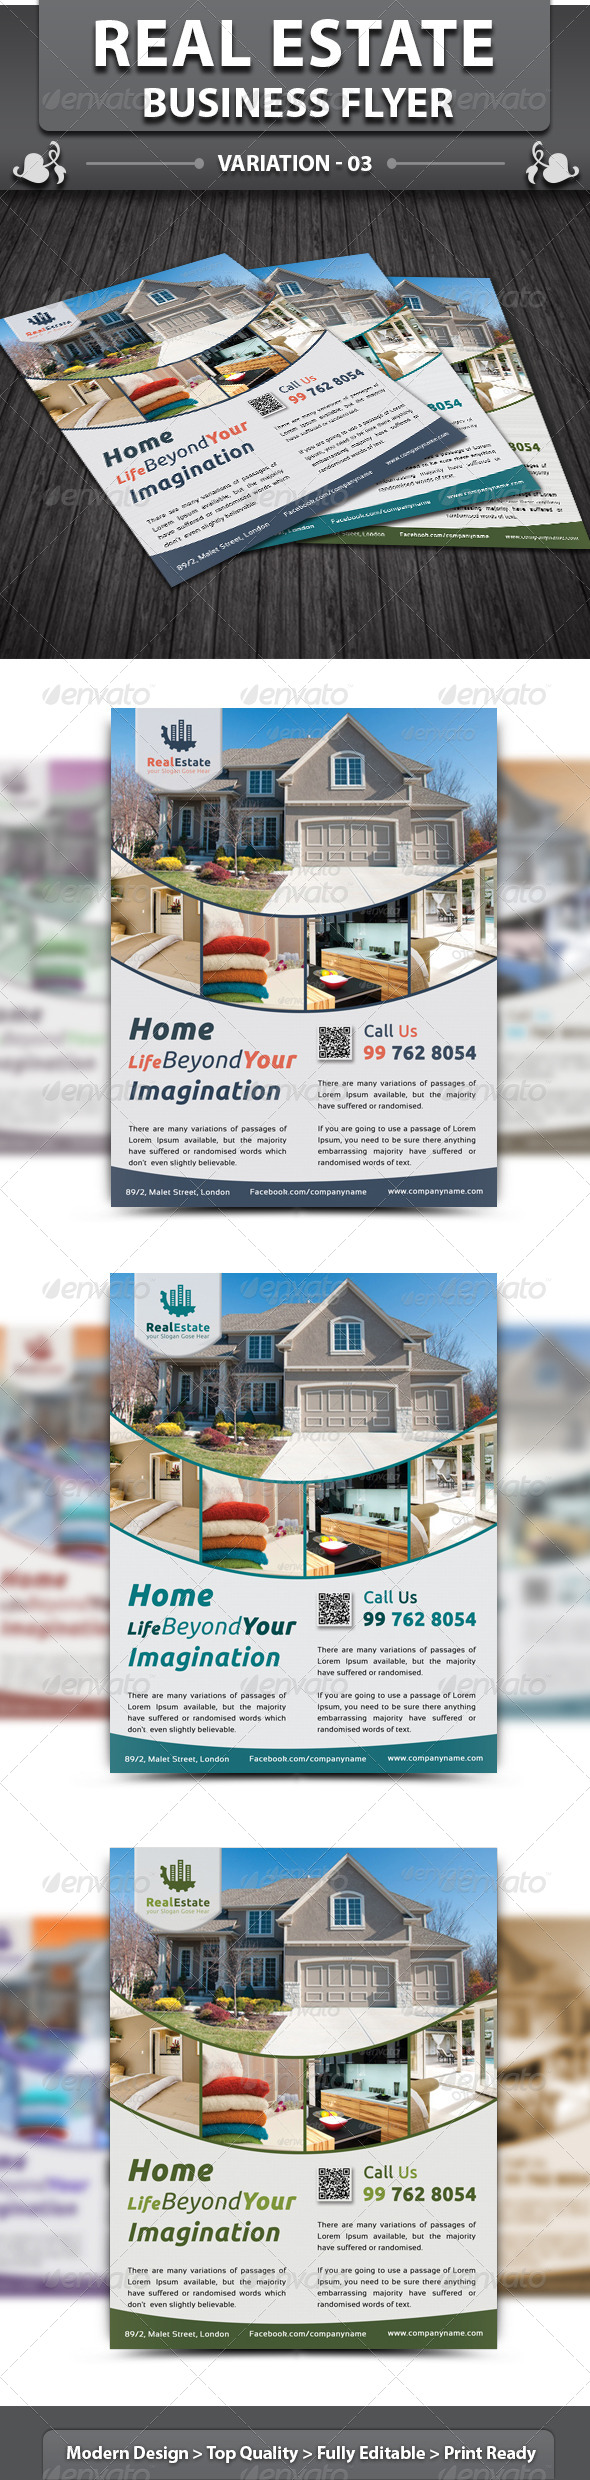 Real Estate Business Flyer - Corporate Flyers